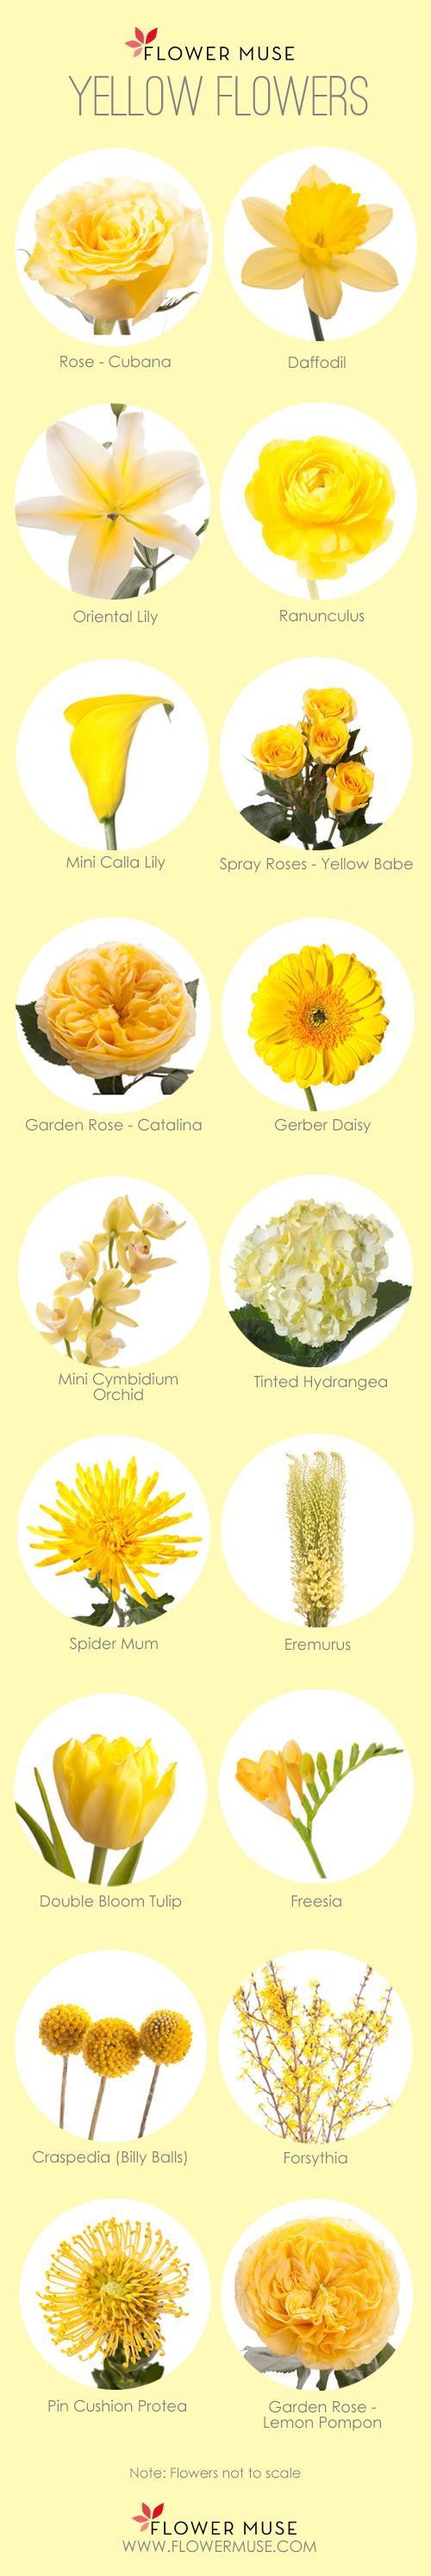 Fiori Gialli Yellow Flowers.Our Favorite Yellow Flowers Fiori Per Matrimoni Fiori Gialli E